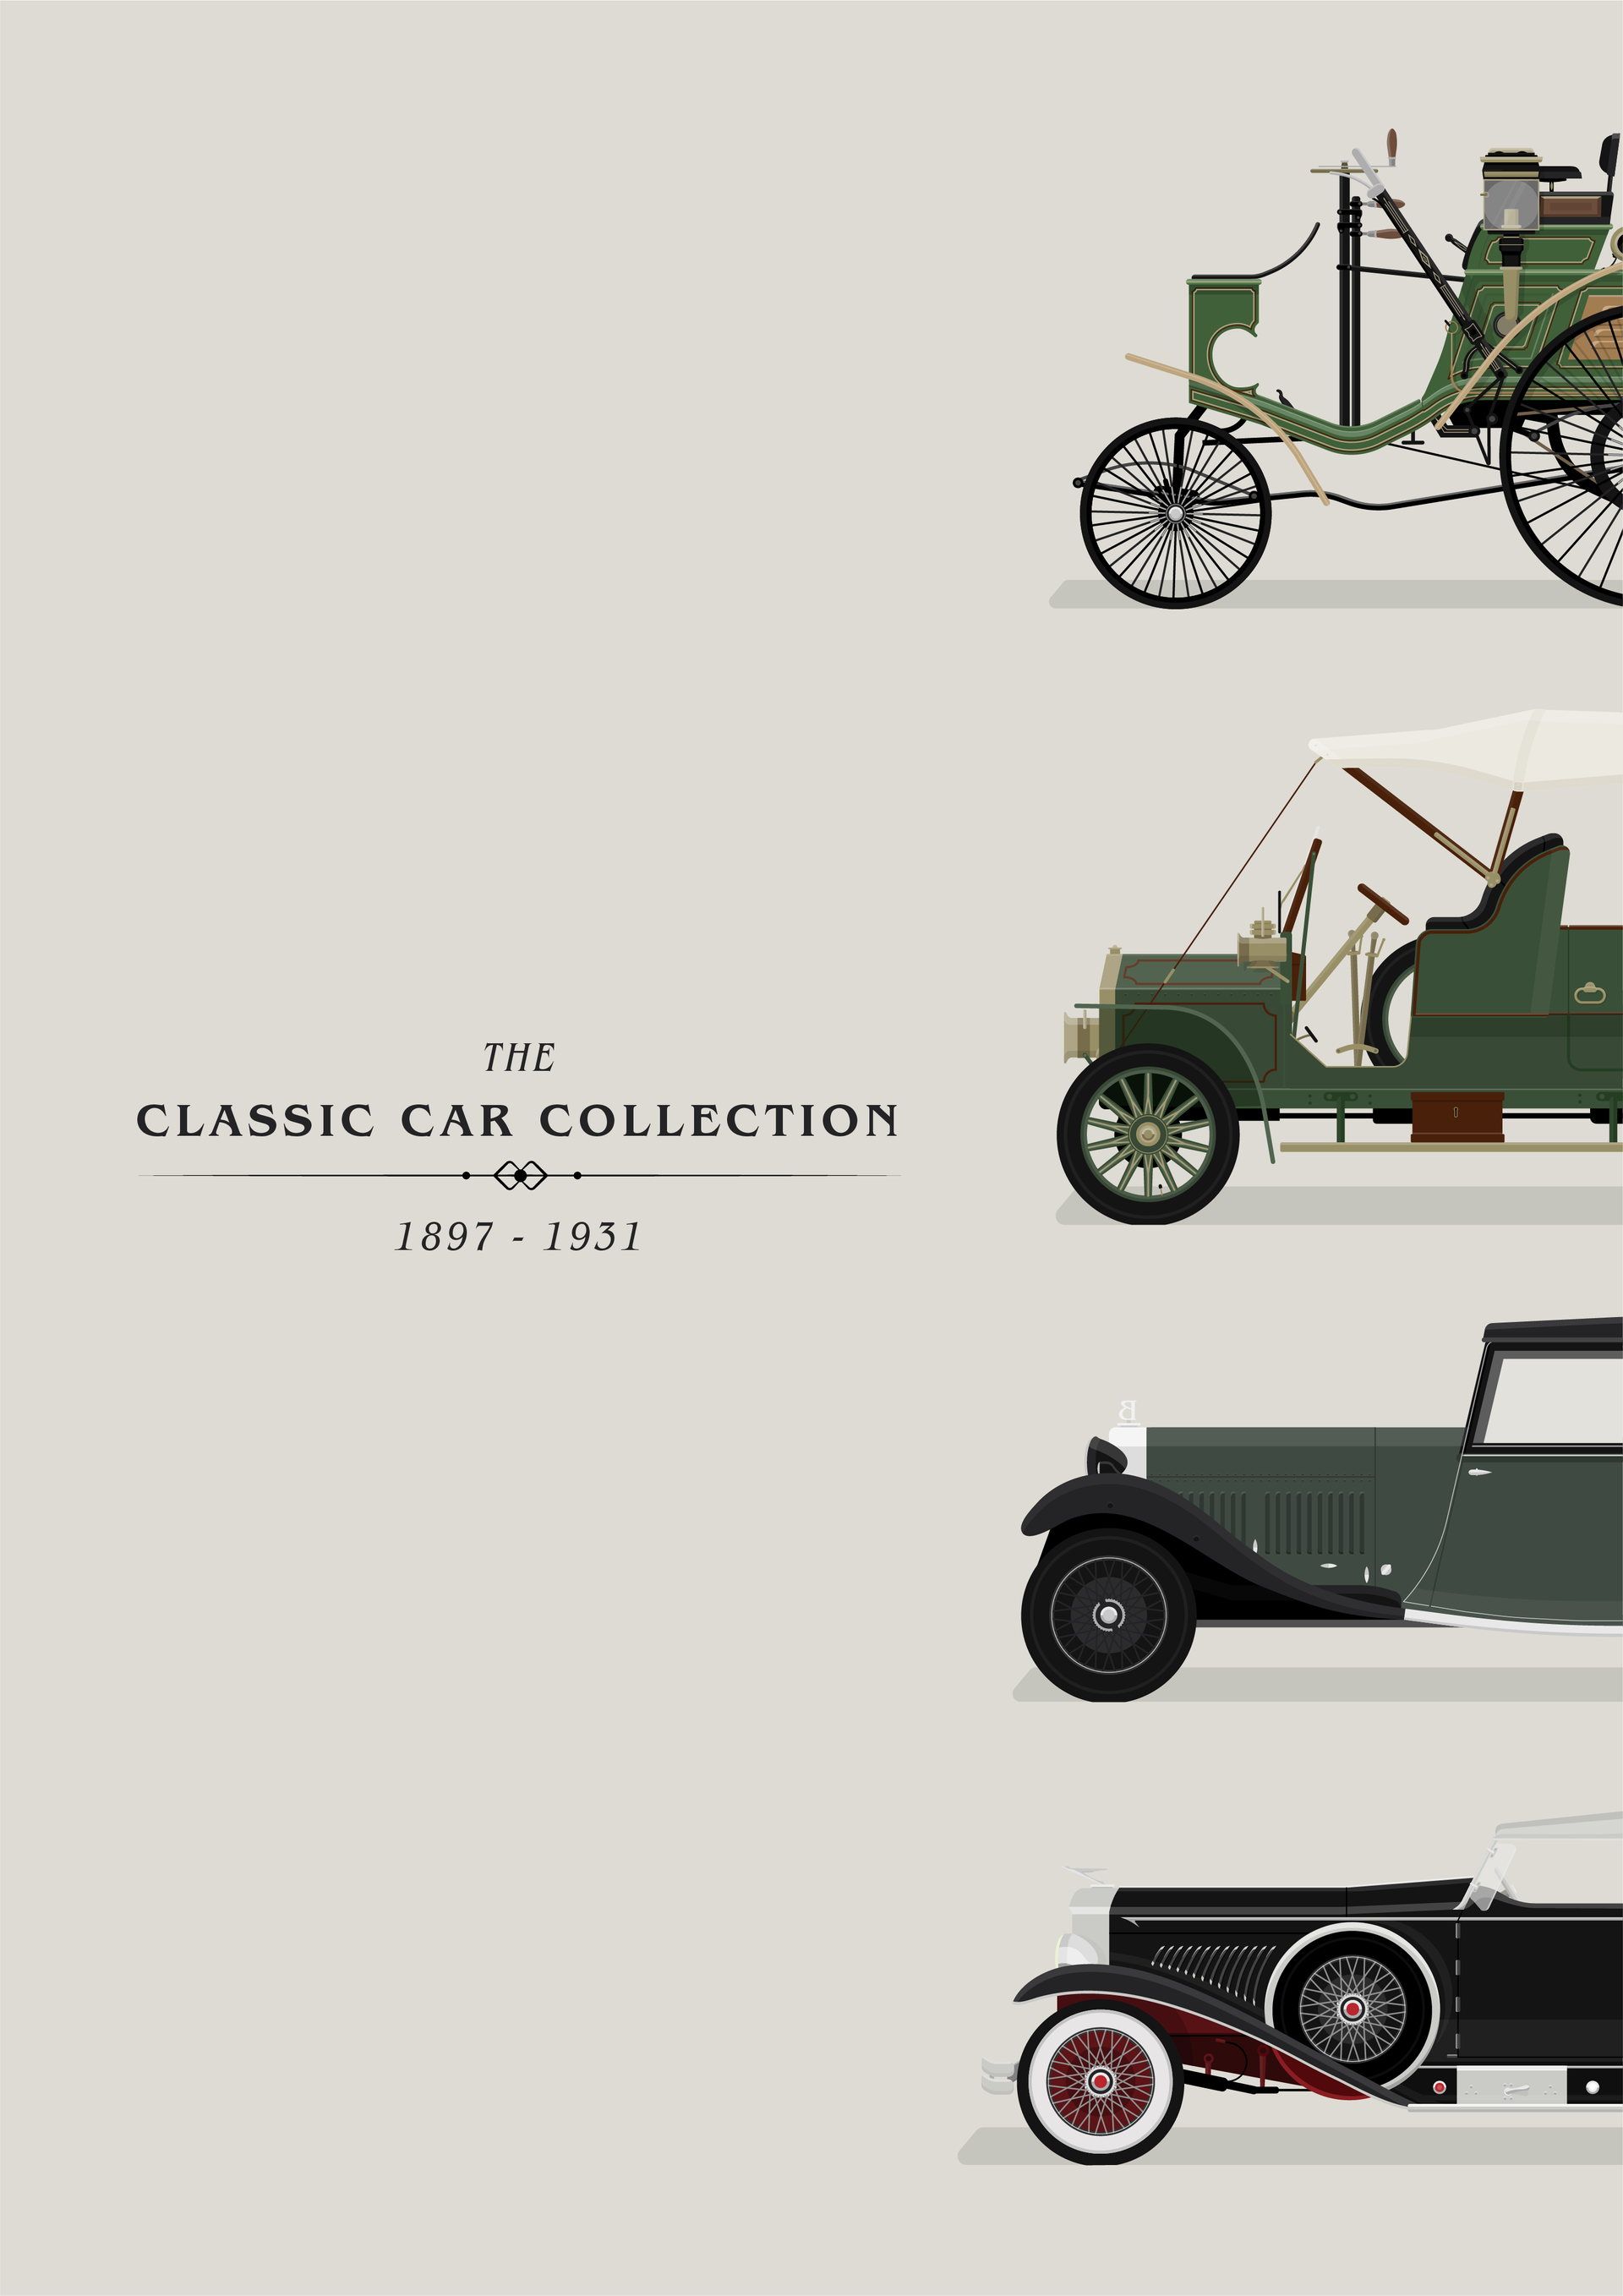 The Classic Car Collection